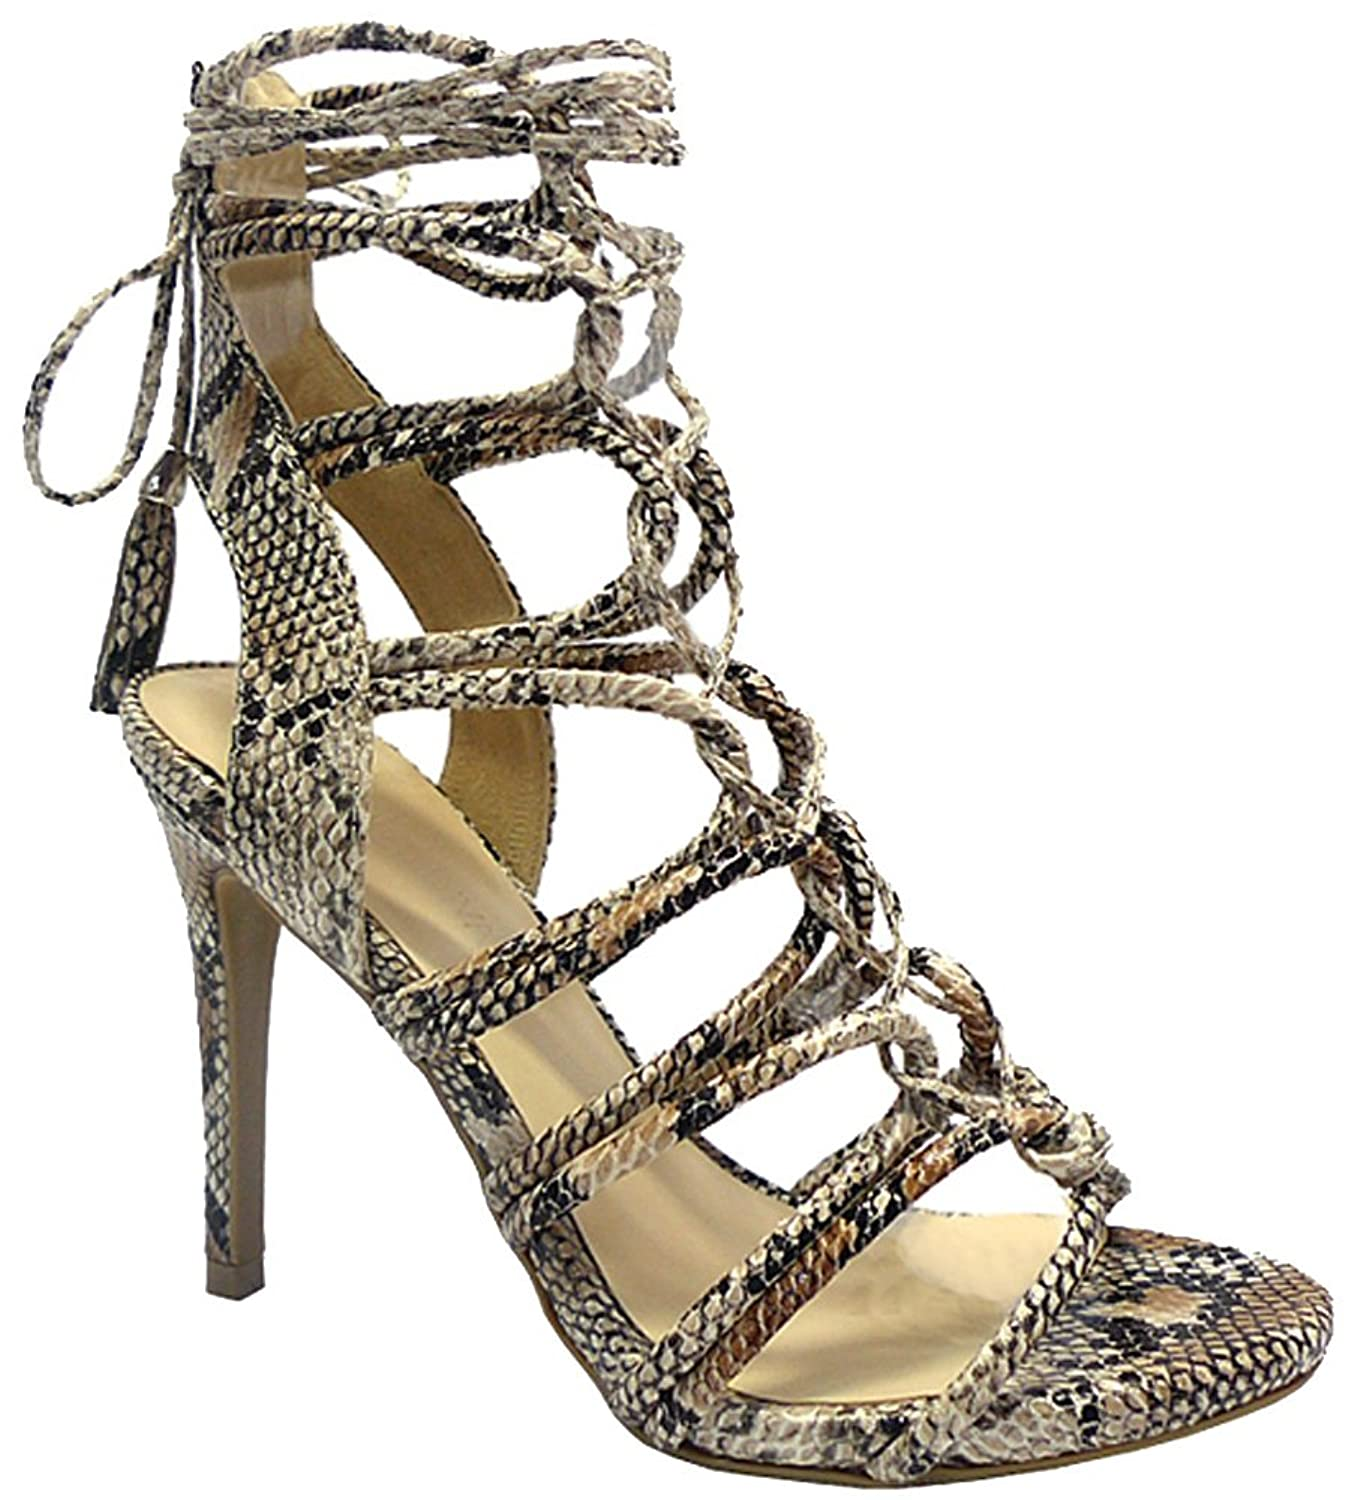 Wild Diva Gladiator Strappy Lace Up Tie High Heel